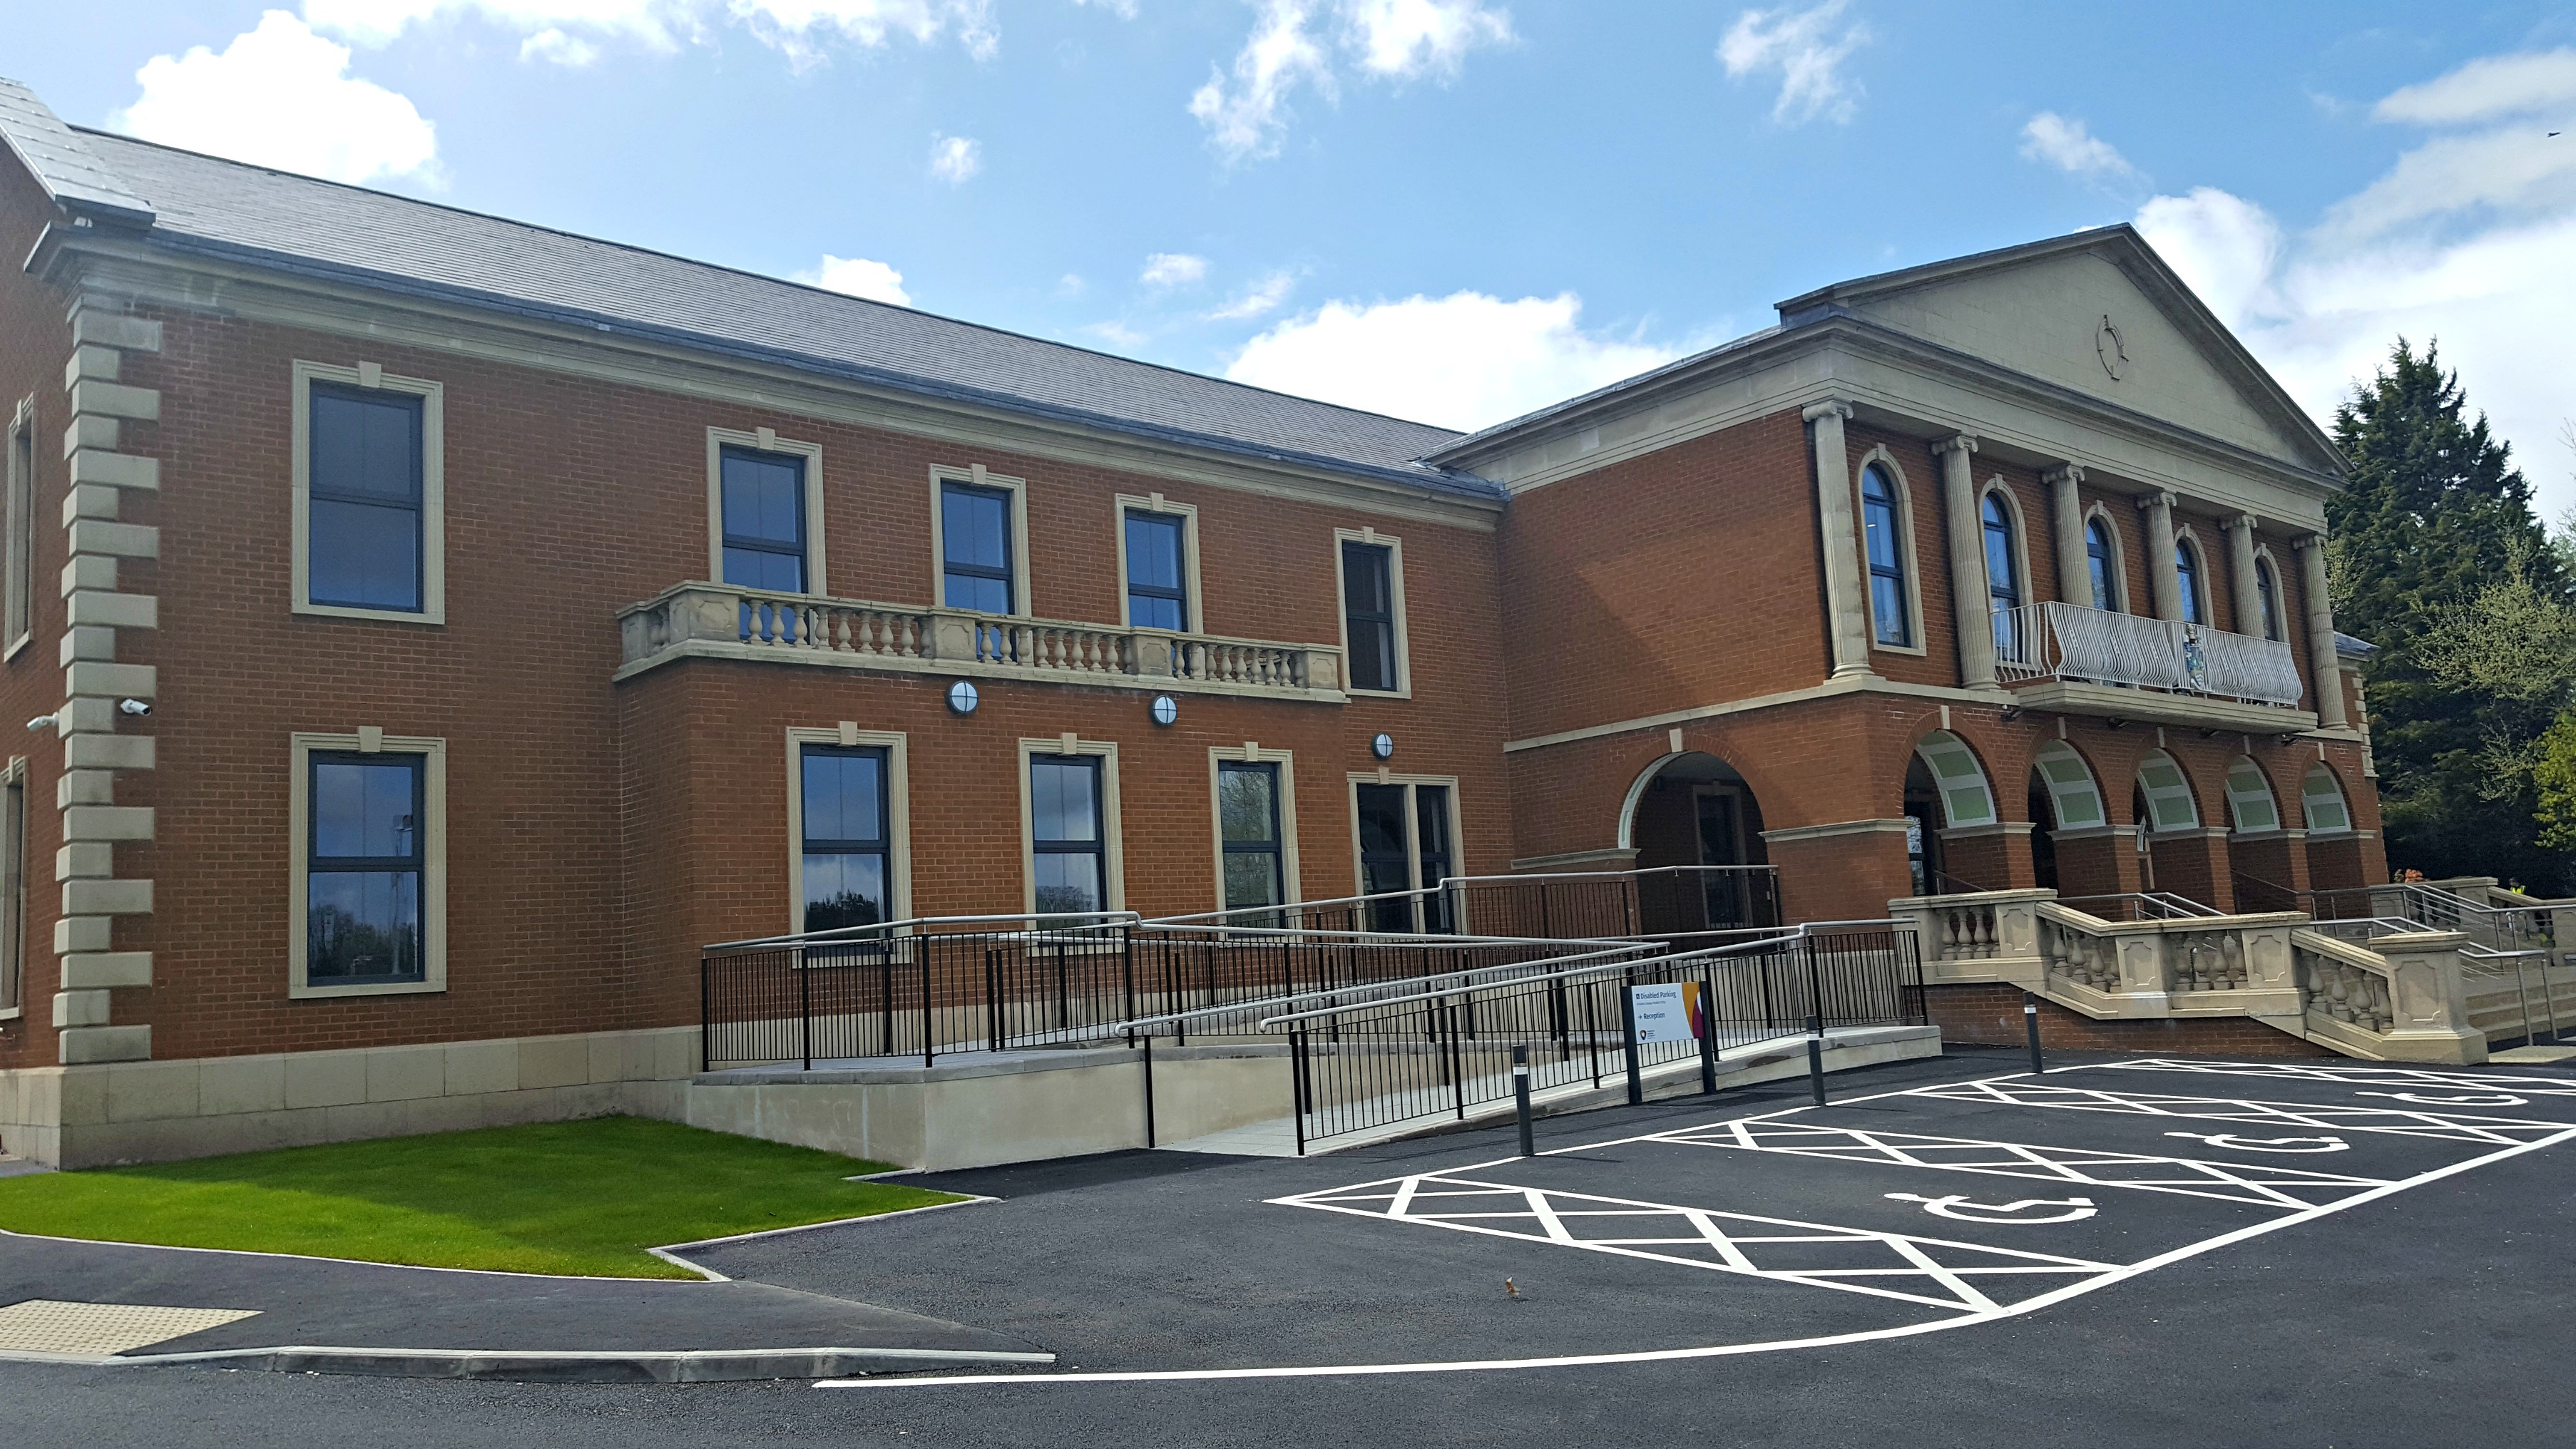 ABC Council Offices - Banbridge